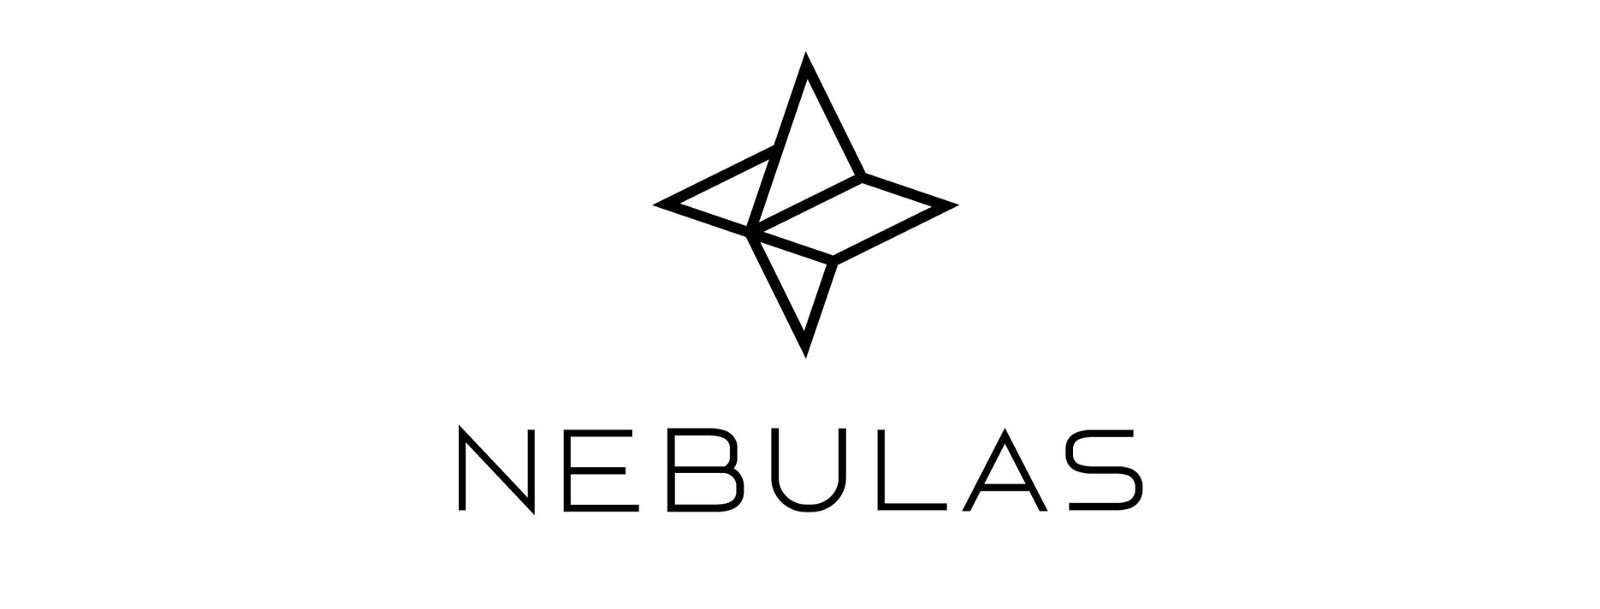 Nebulas (NAS) Wants To Reward You For Referrals Through Its NEW Super Contributors Program 13